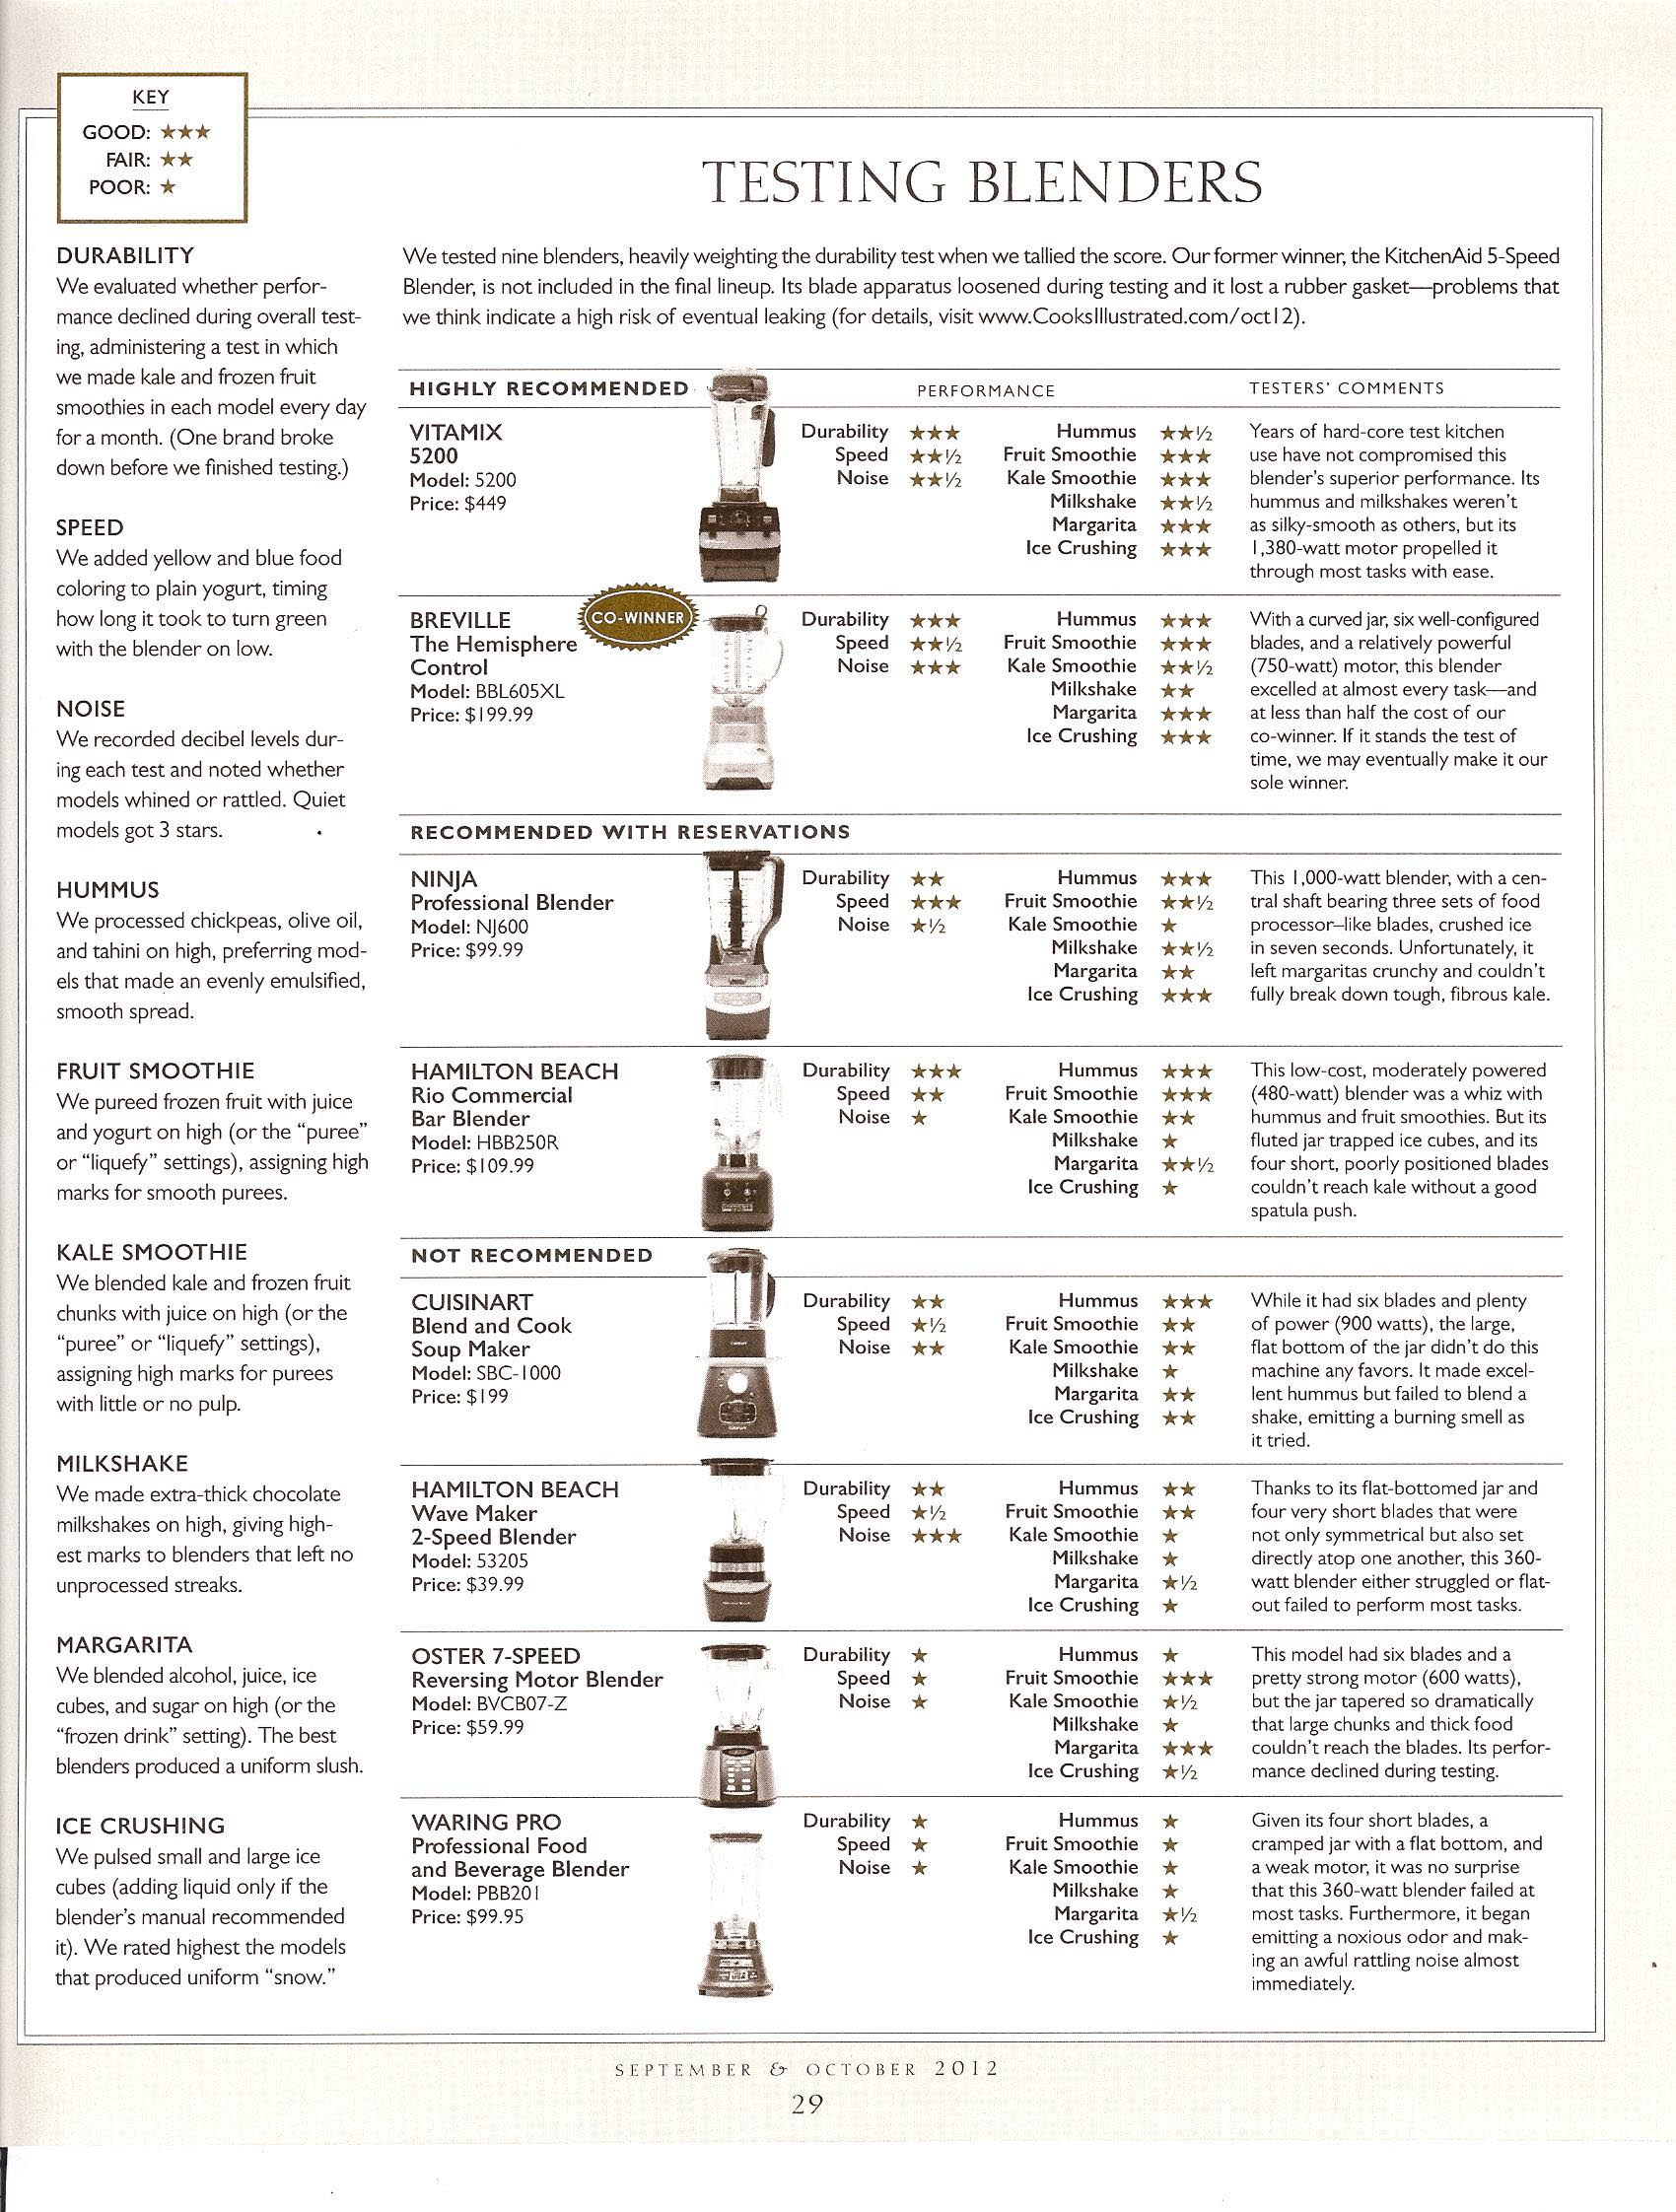 chart comparing different blenders